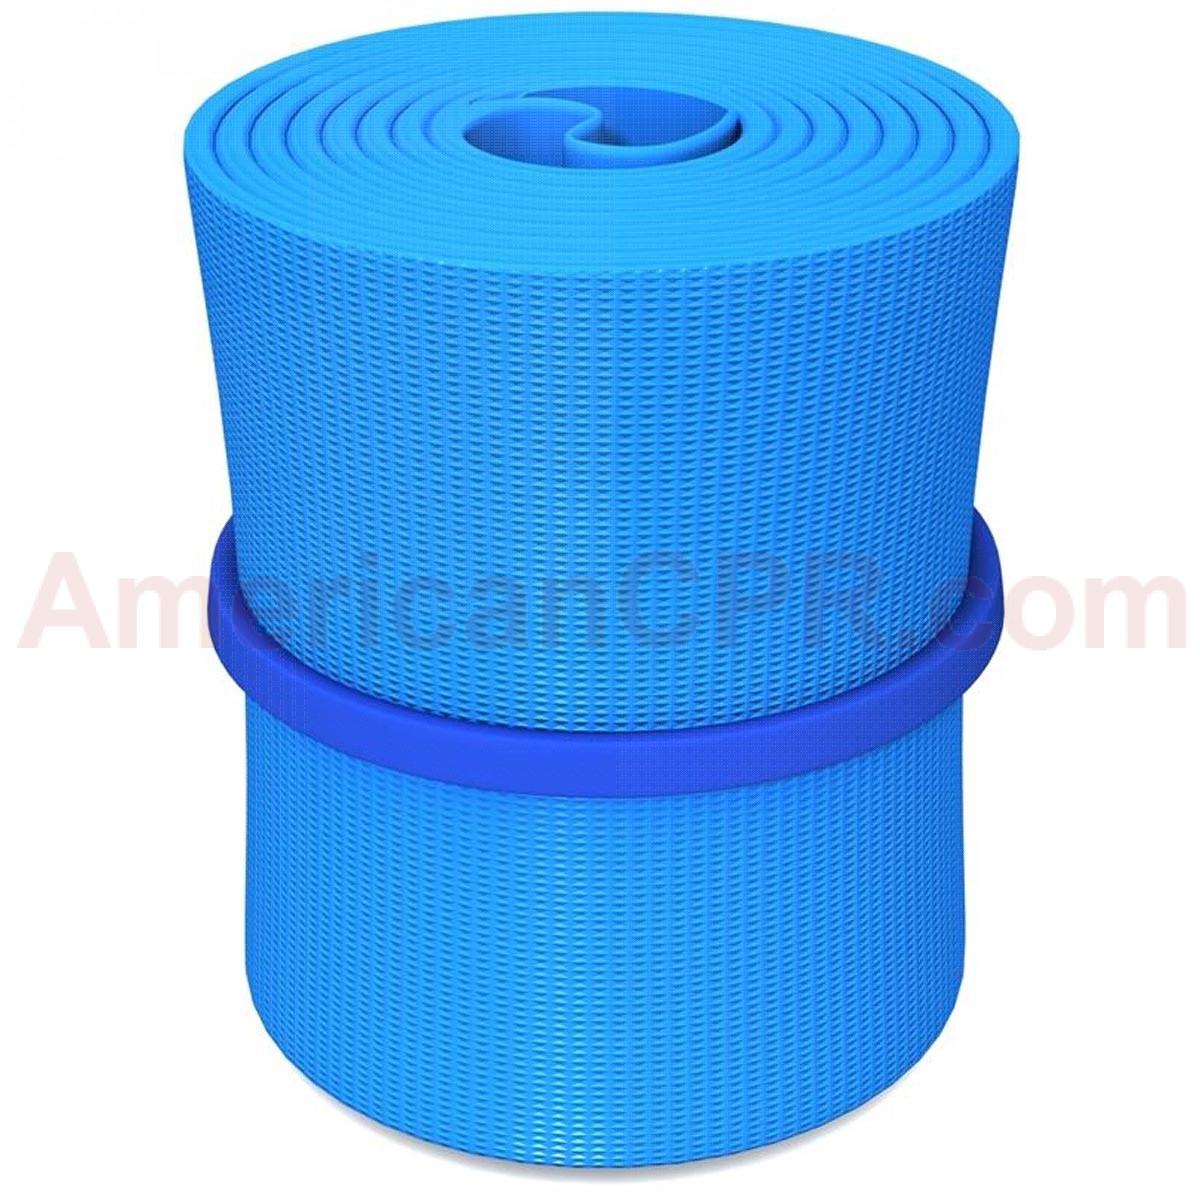 Strong and superior elastic construction for comfort. Tear resistant for maximum performance.